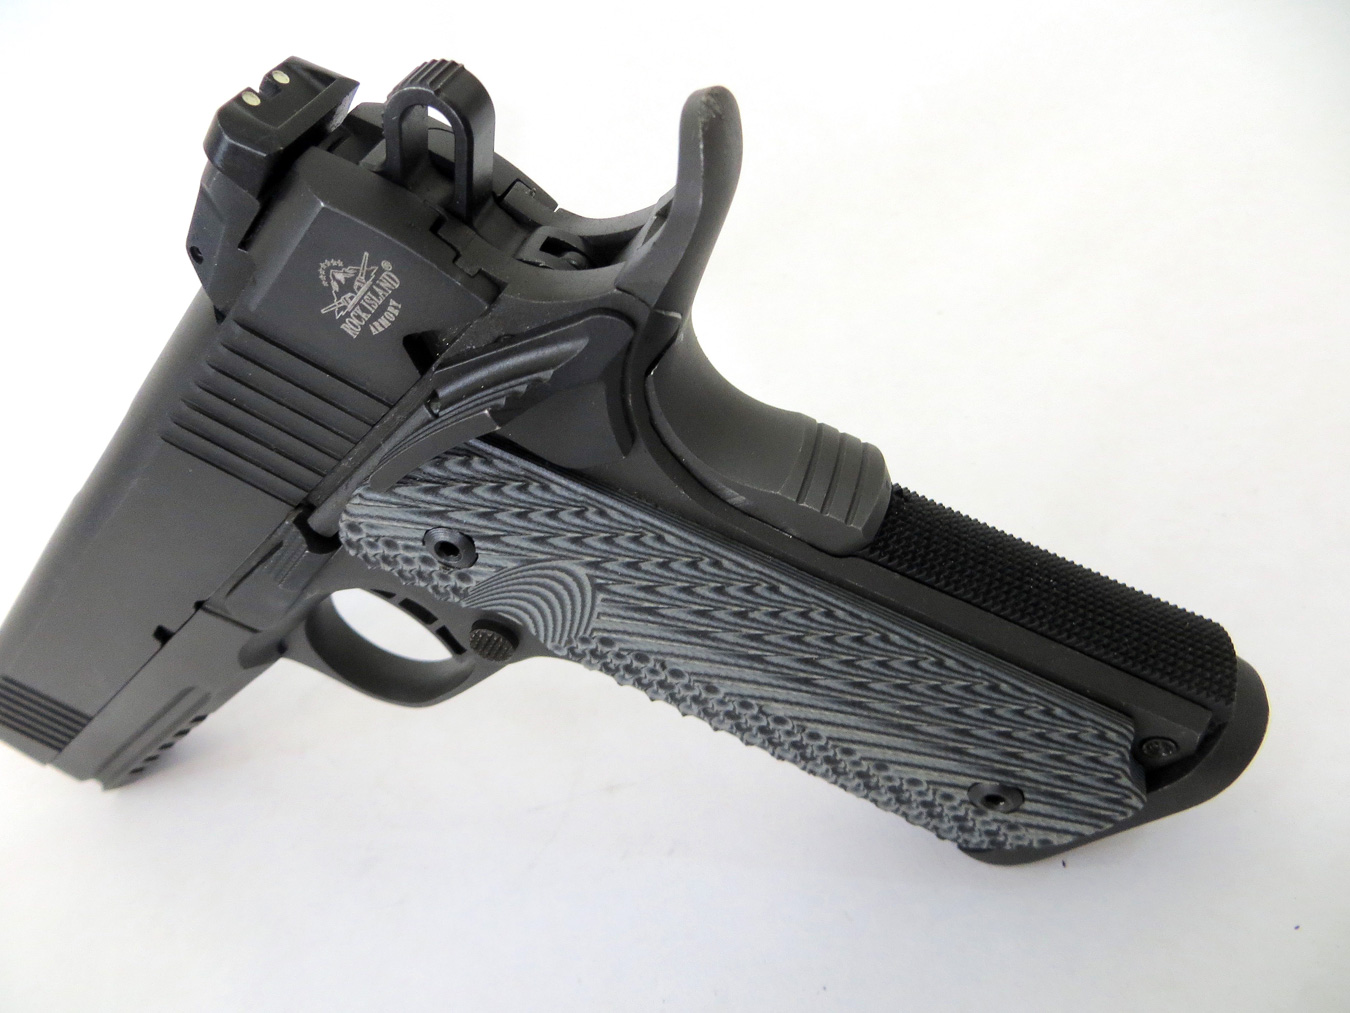 Rock Island Armory 10mm pistol with extended beavertail